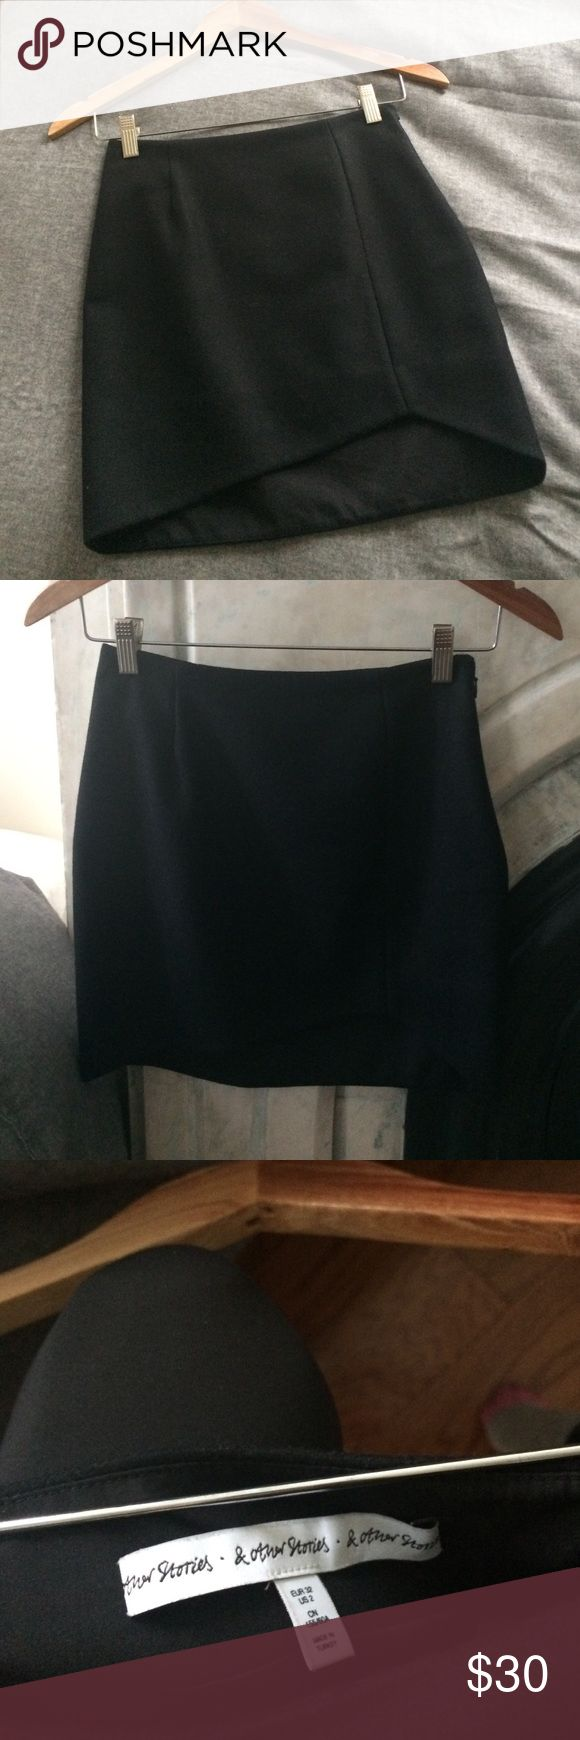 & Other Stories black mini skirt Black mini in wool blend type material with smooth lining. Slightly higher hem in the front left and longer in back. Super cute, great condition. & other stories Skirts Mini